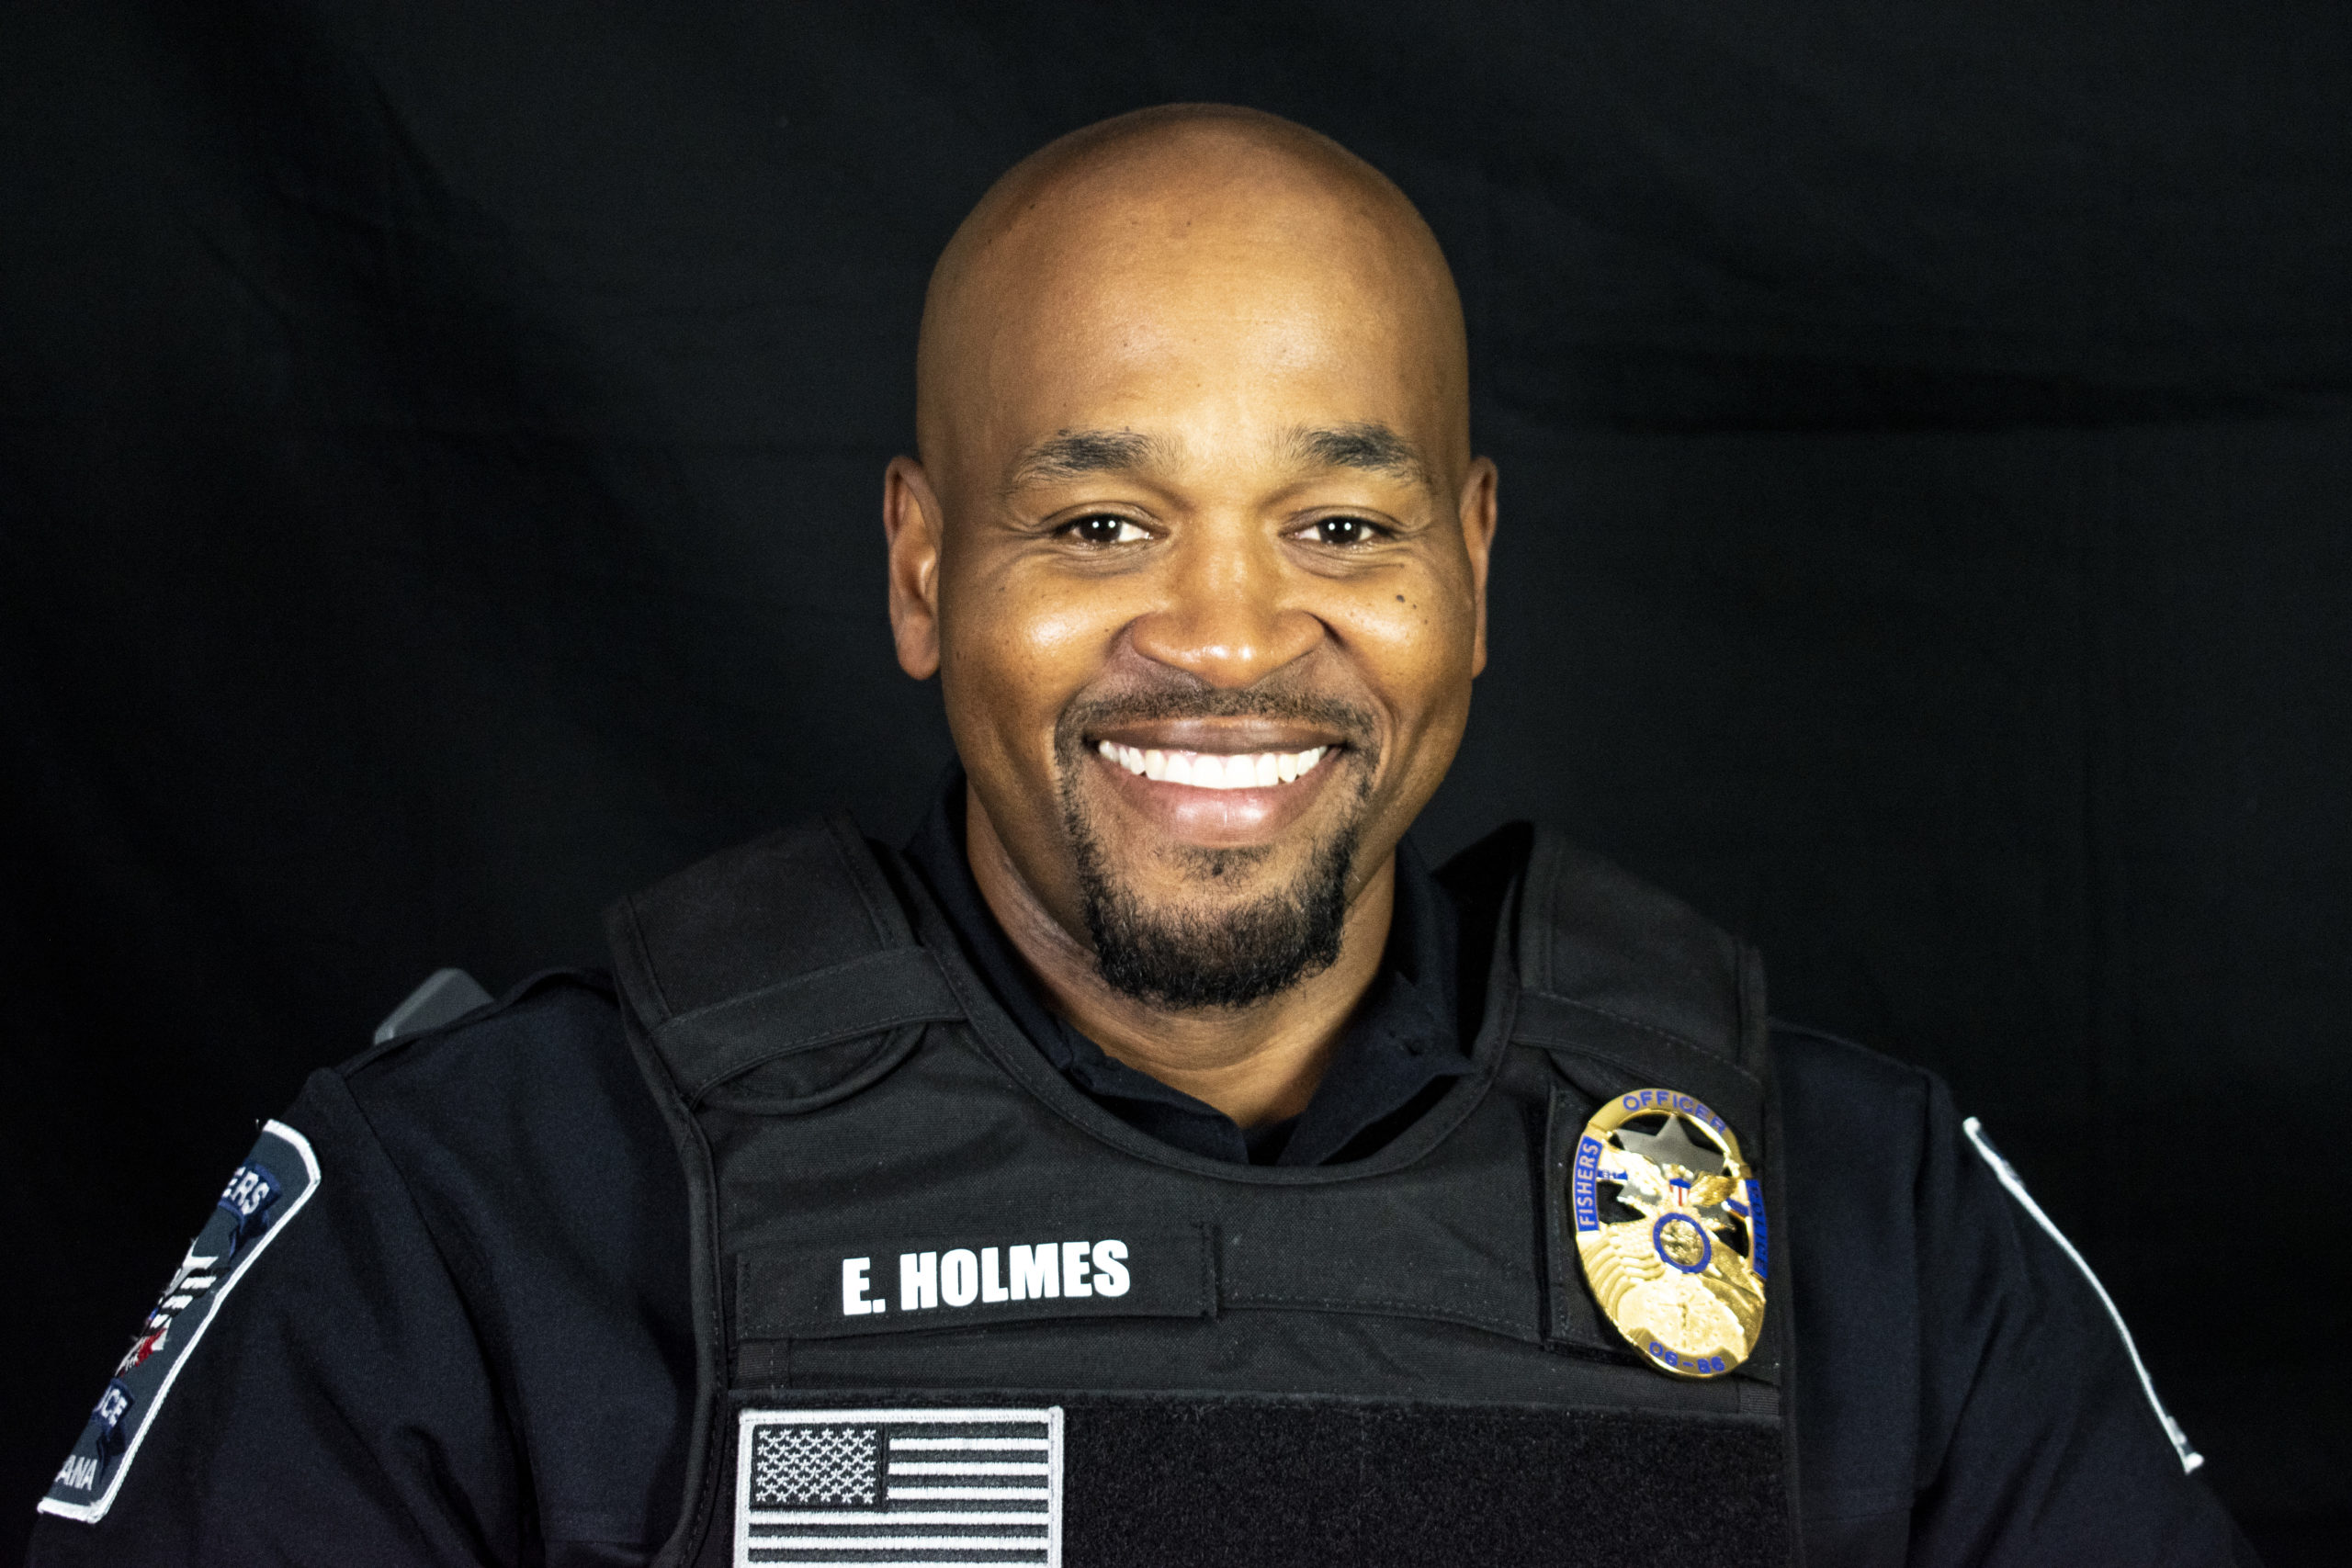 a headshot of a man in a police uniform smiling